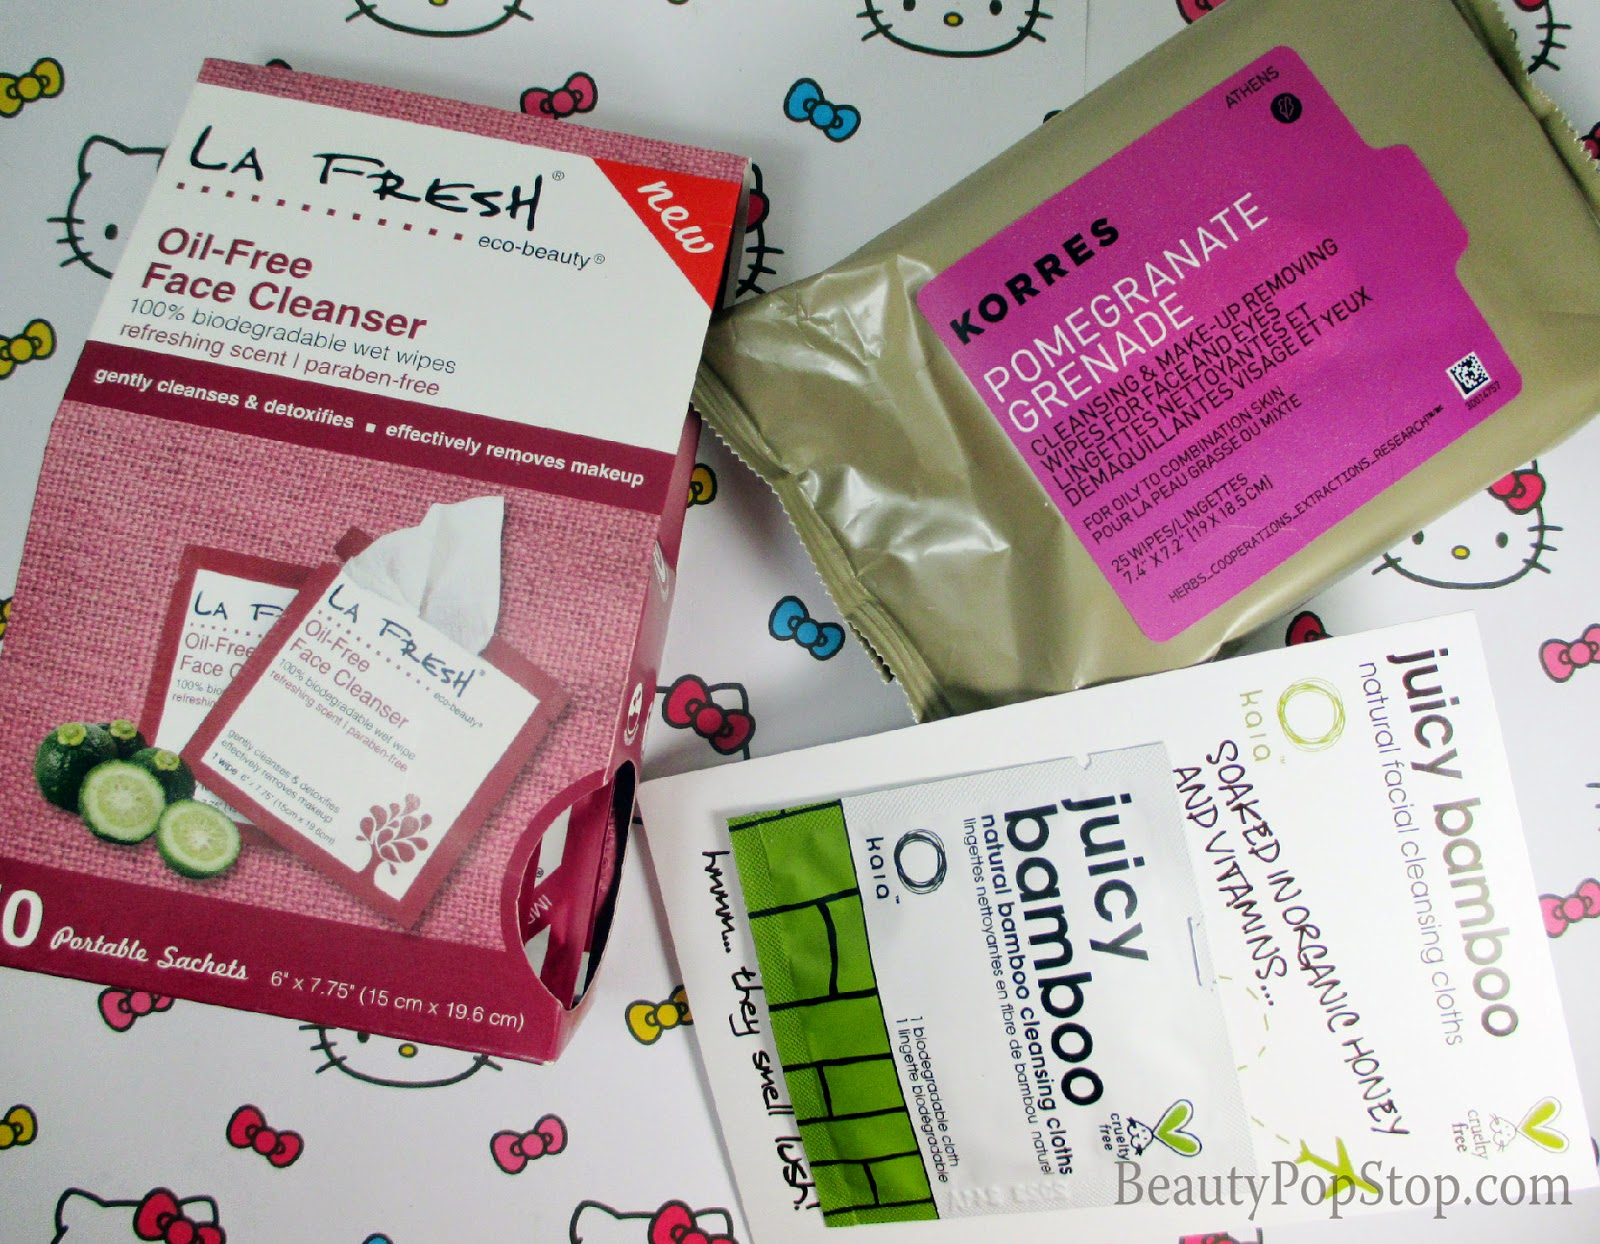 top face cleansing cloths - korres, LA fresh, kaia natural